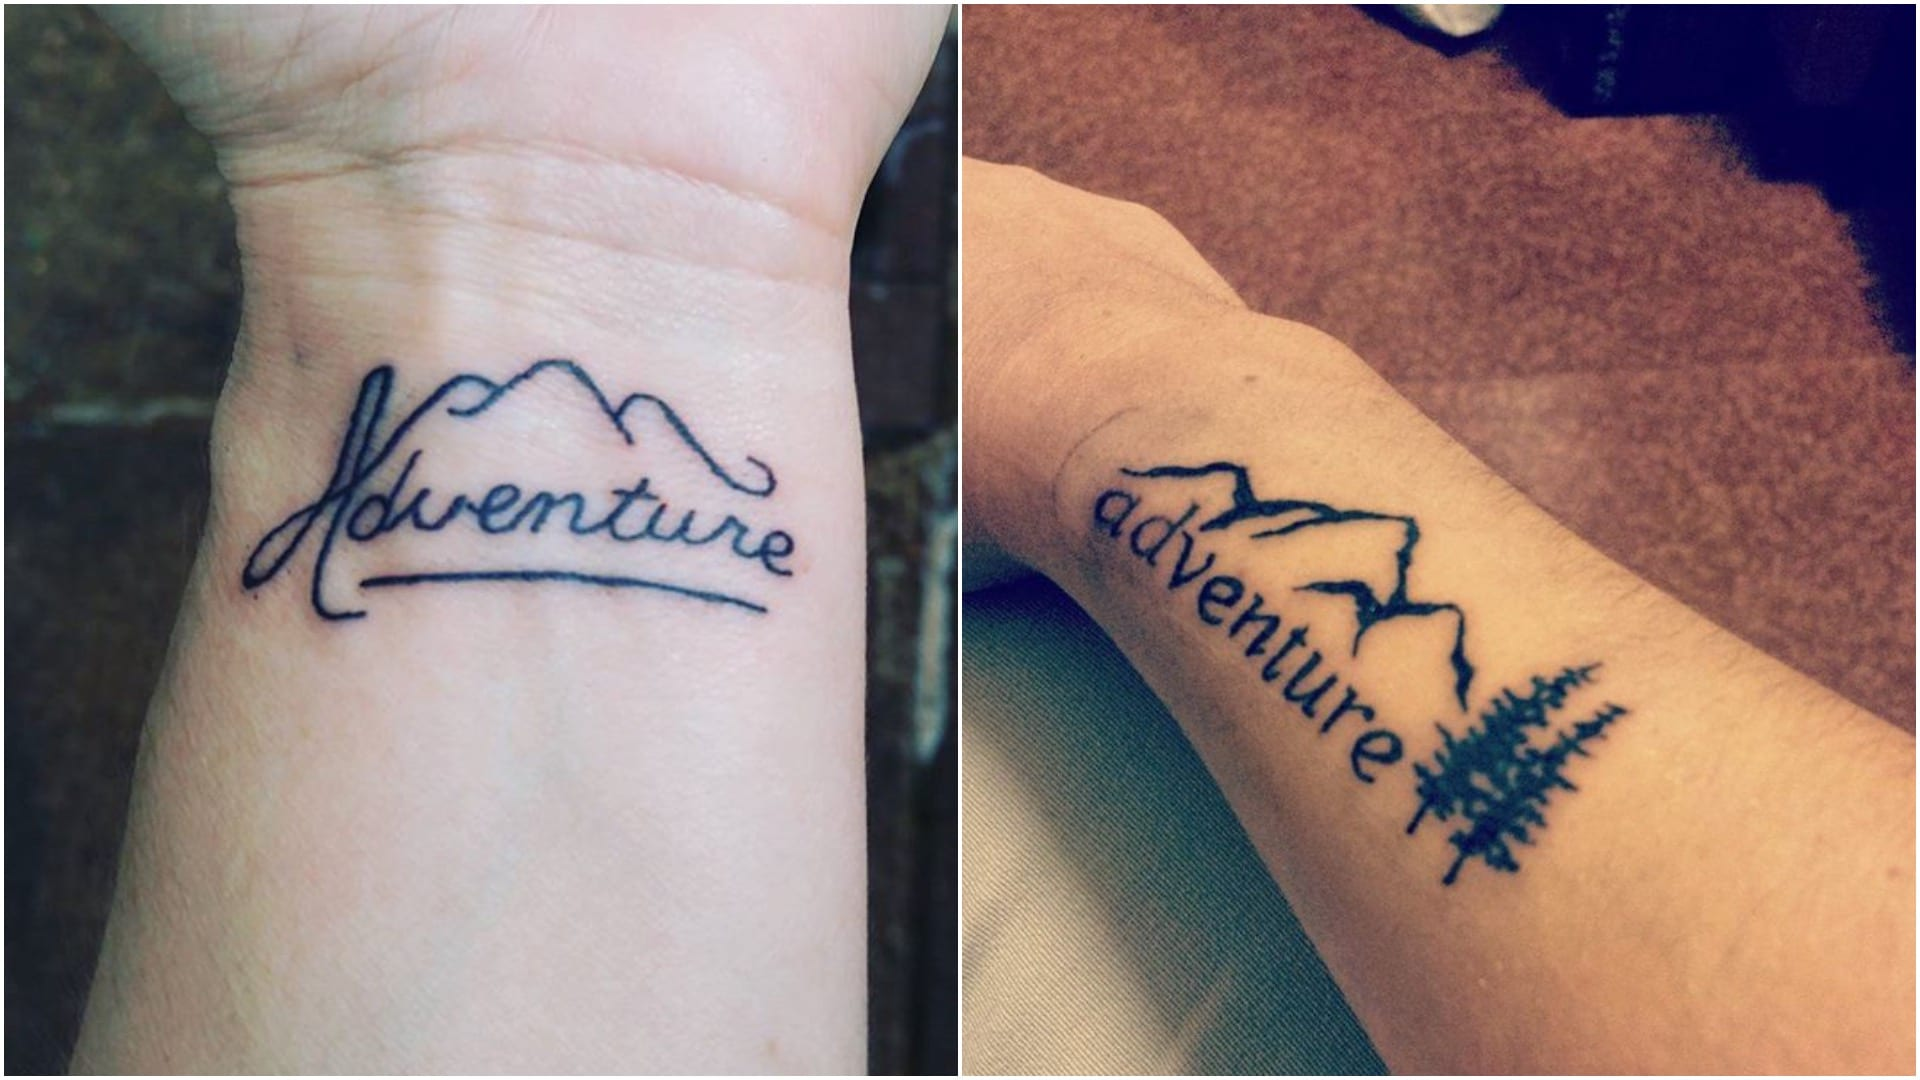 10 Most Amazing Travel Tattoos - backpackways.com